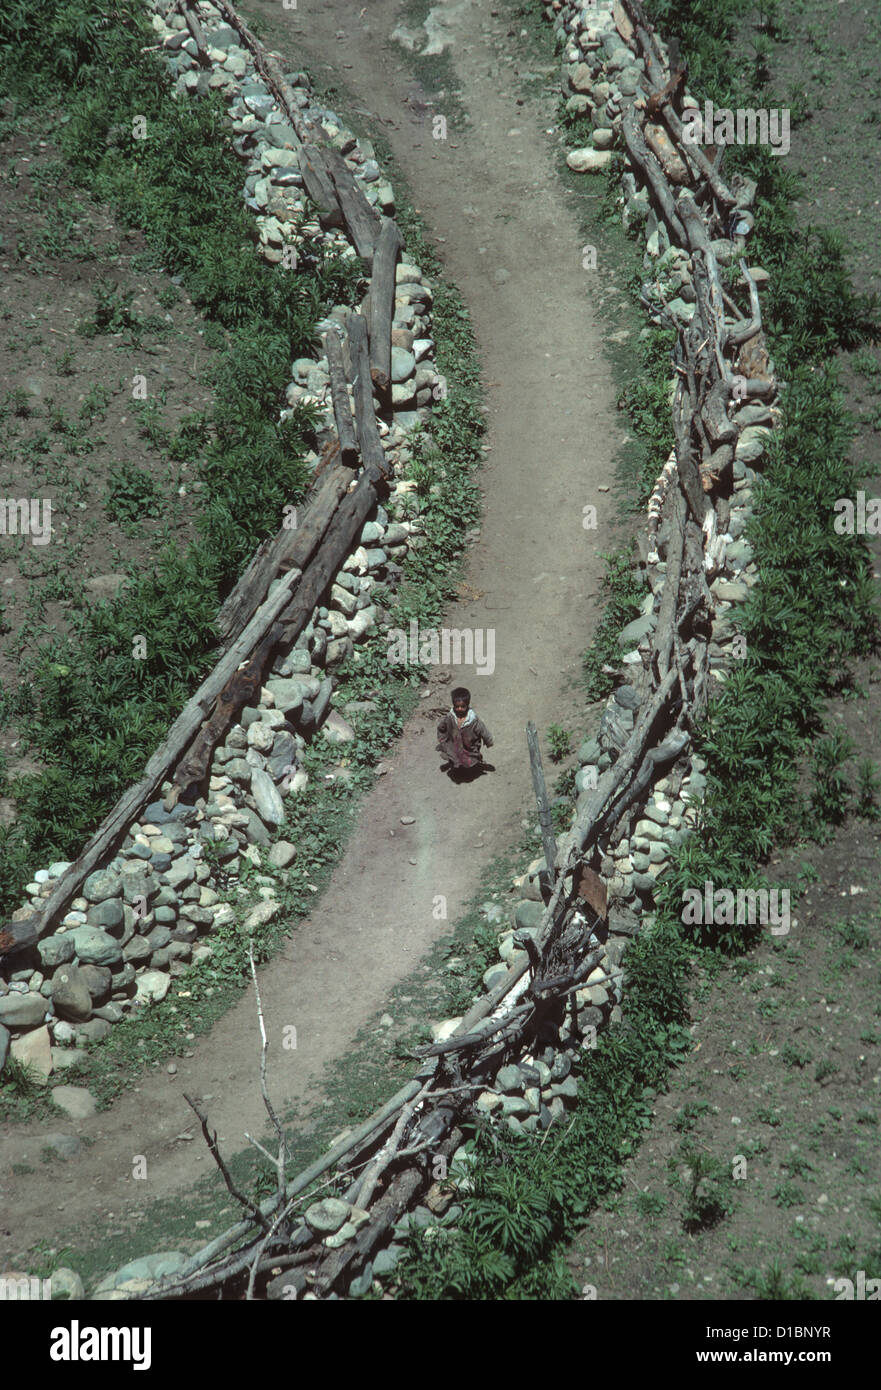 Kashmir, Sind Valley, looking down on a small child running along a village path between rough dry stone walls Stock Photo